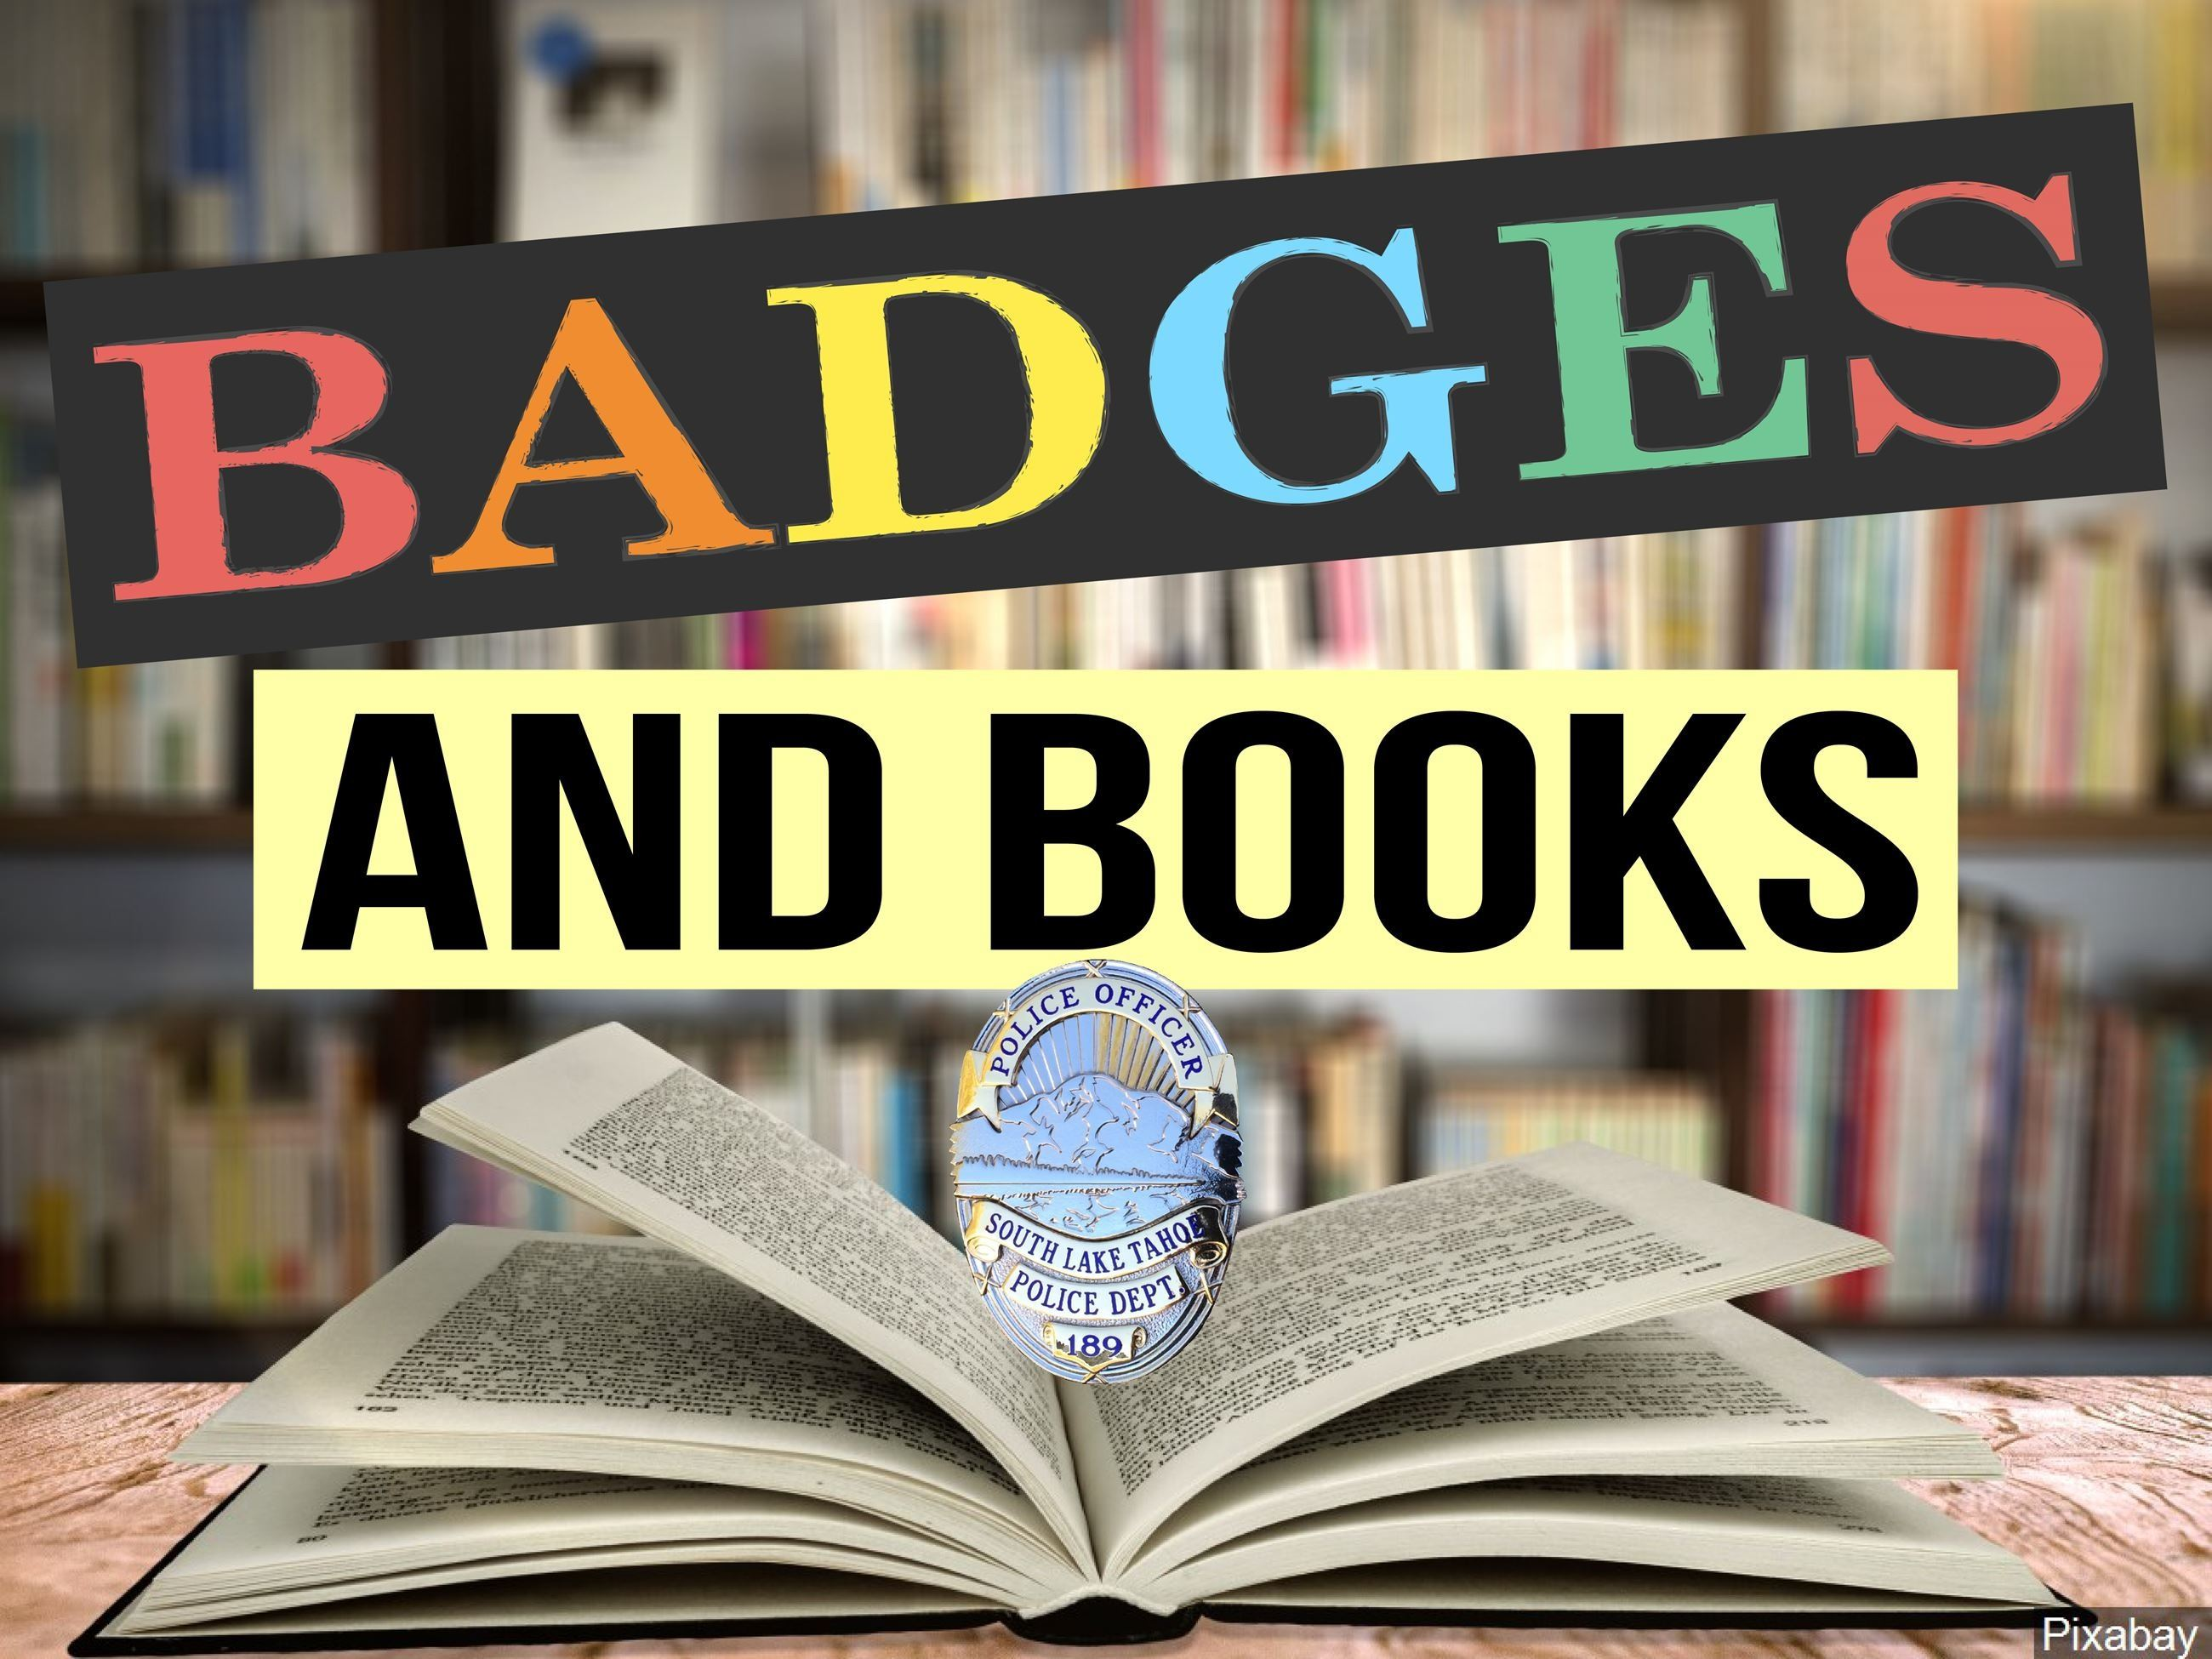 BADGES AND BOOKS